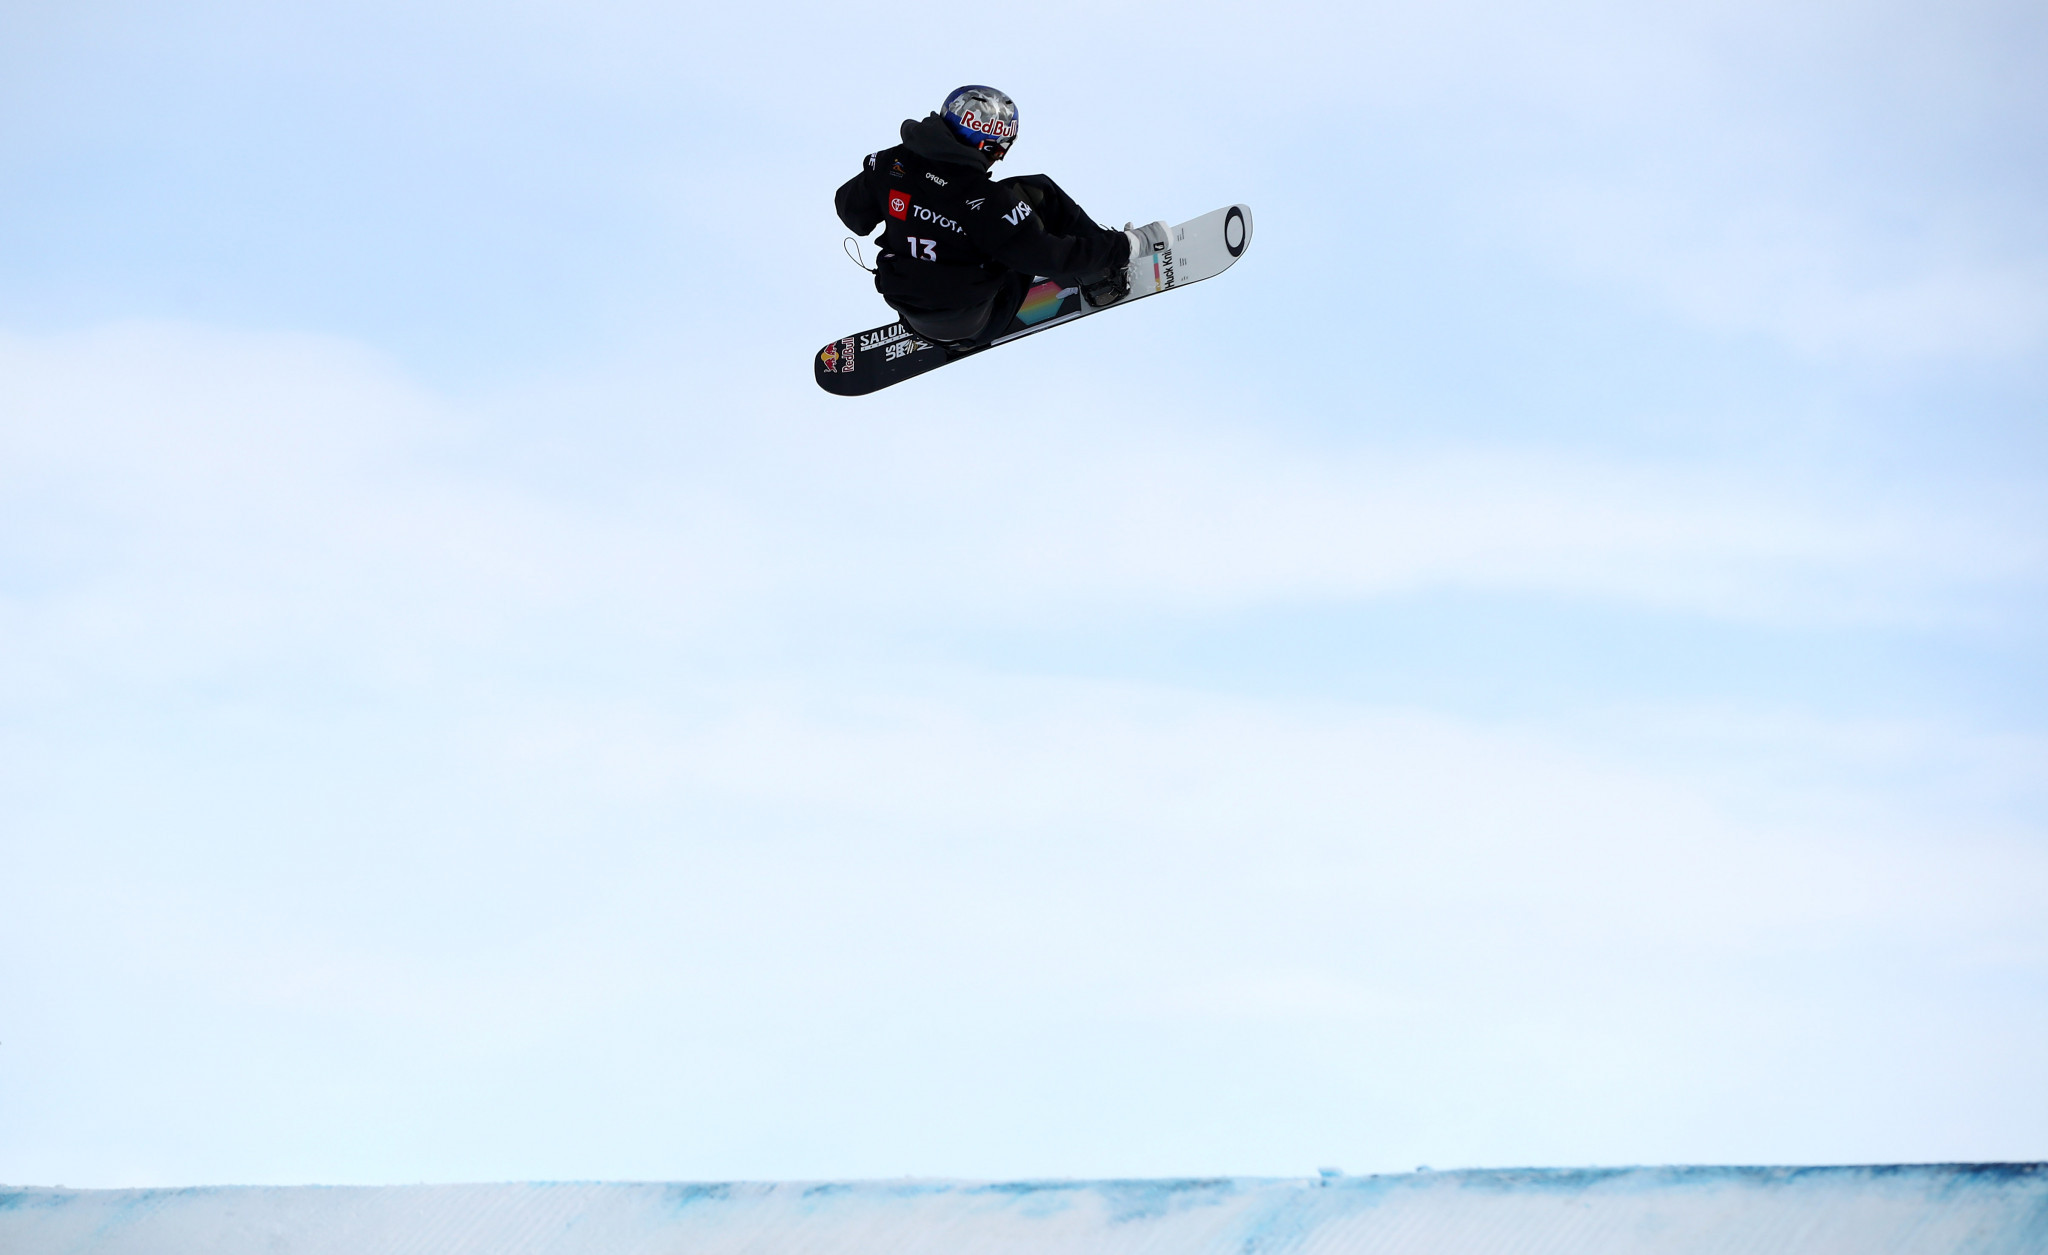 Judd Henkes had topped the men's slopestyle qualifiers ©Getty Images